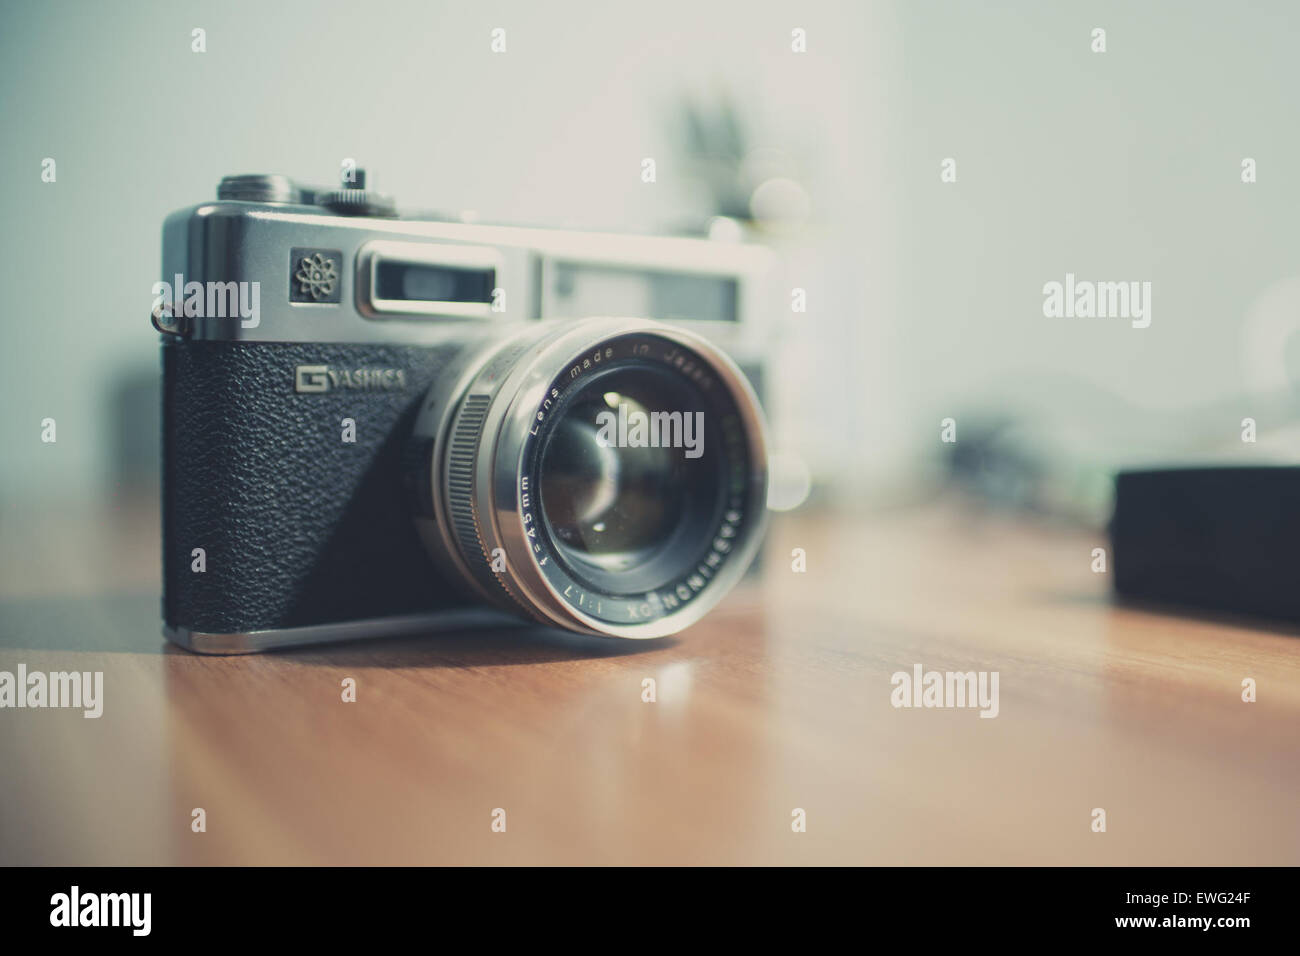 Yashica Camera with Lens Desktop Indoor Photographic Equipment Tabletop Yashica camera lens photography - Stock Image